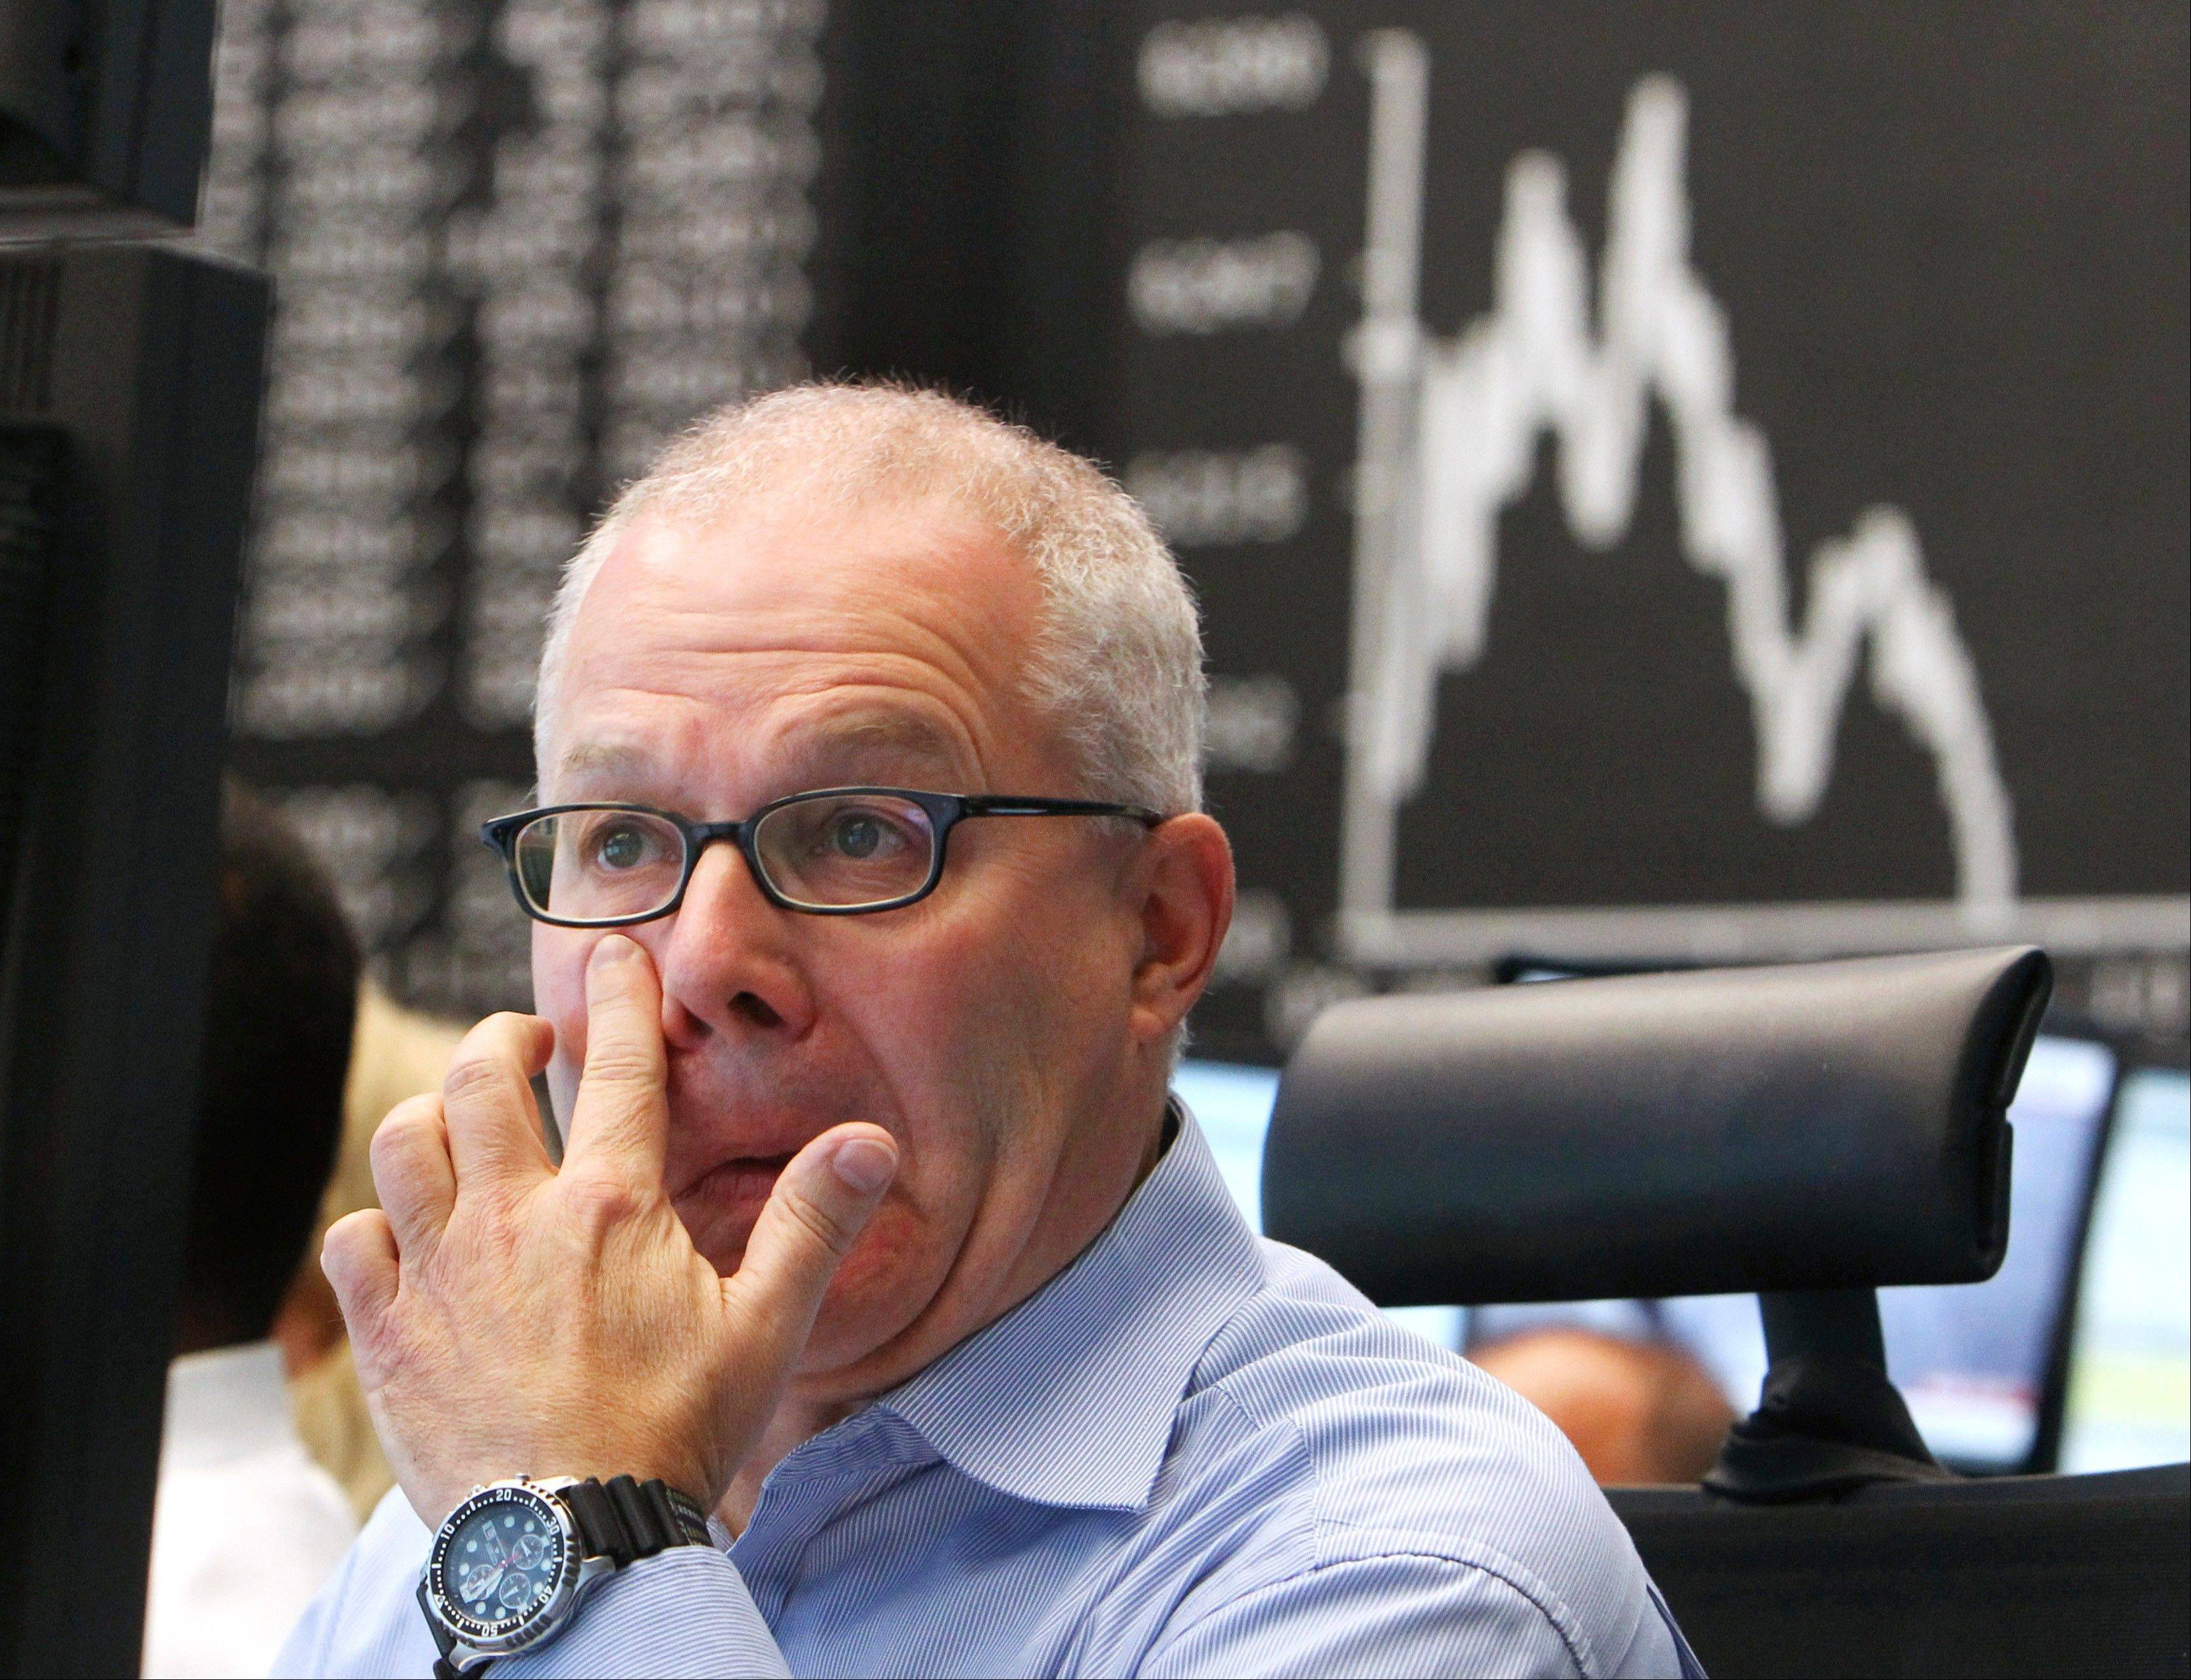 A broker watches his screens under the curve of the German stock index DAX at the stock market in Frankfurt, Germany, Monday, Aug. 8, 2011, where the stock index went down after the opening of the stock market.